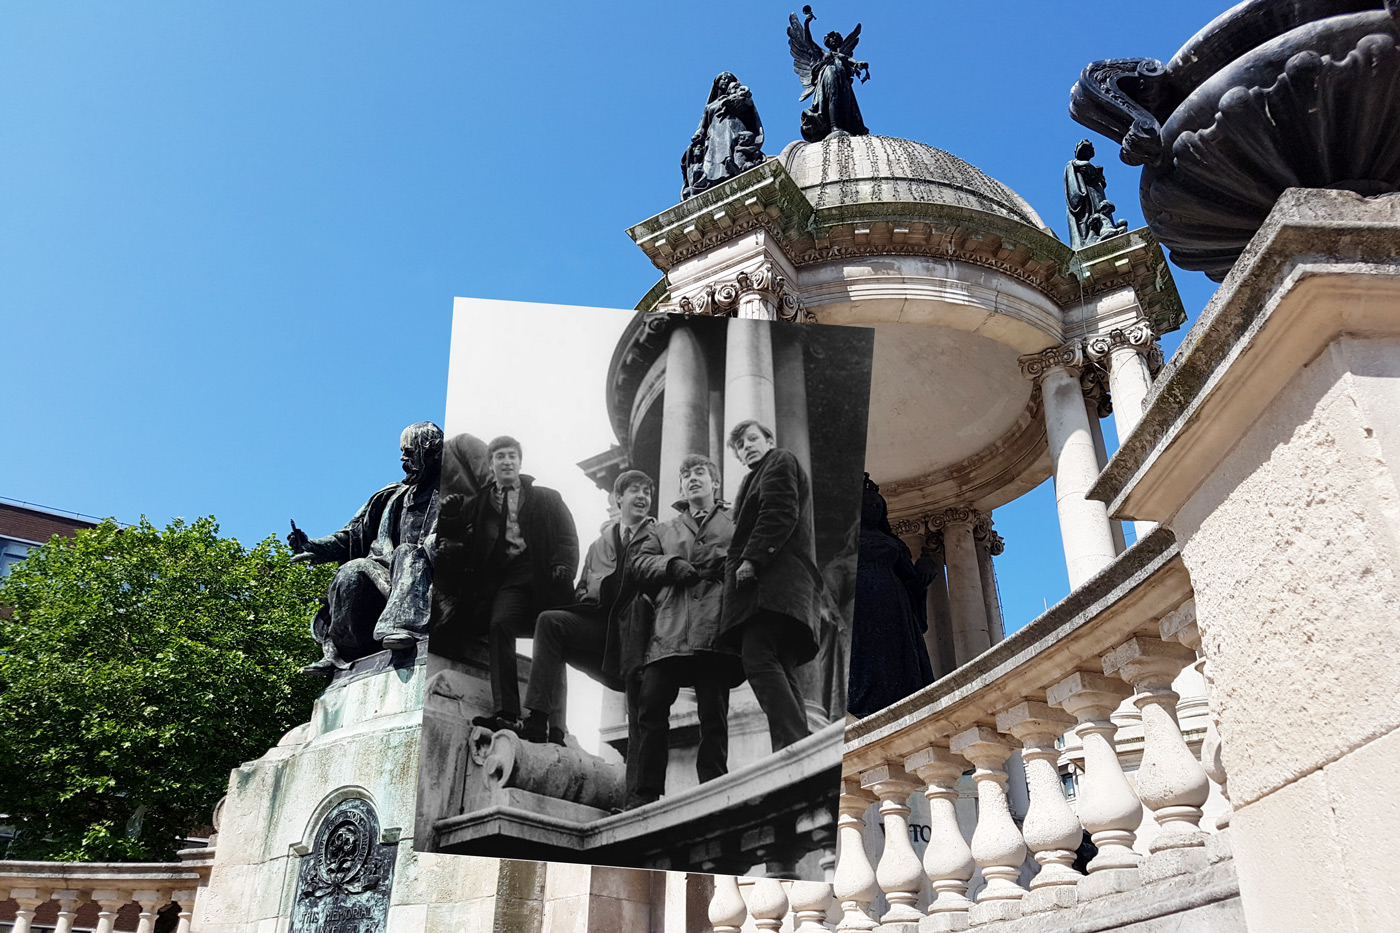 A walk in the footsteps of The Beatles